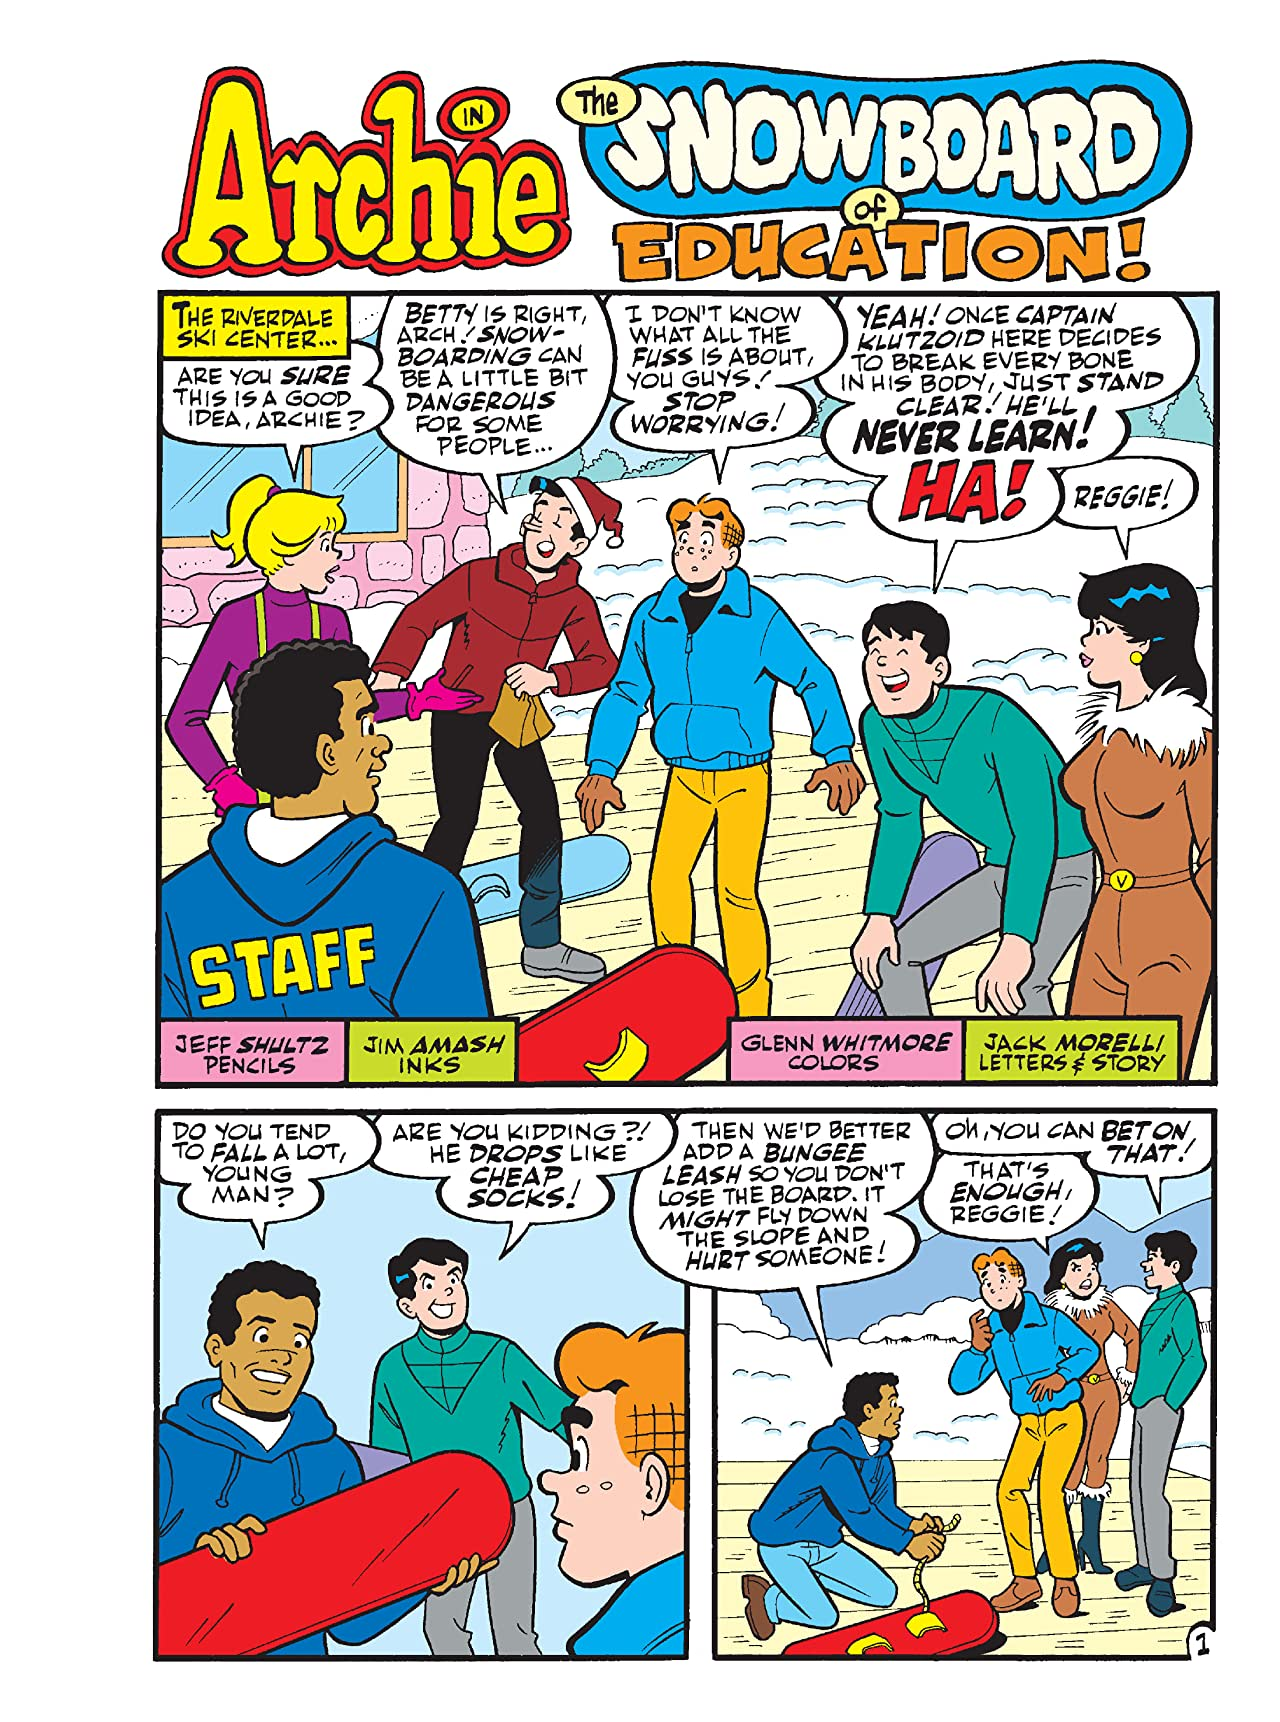 World of Archie Double Digest #106